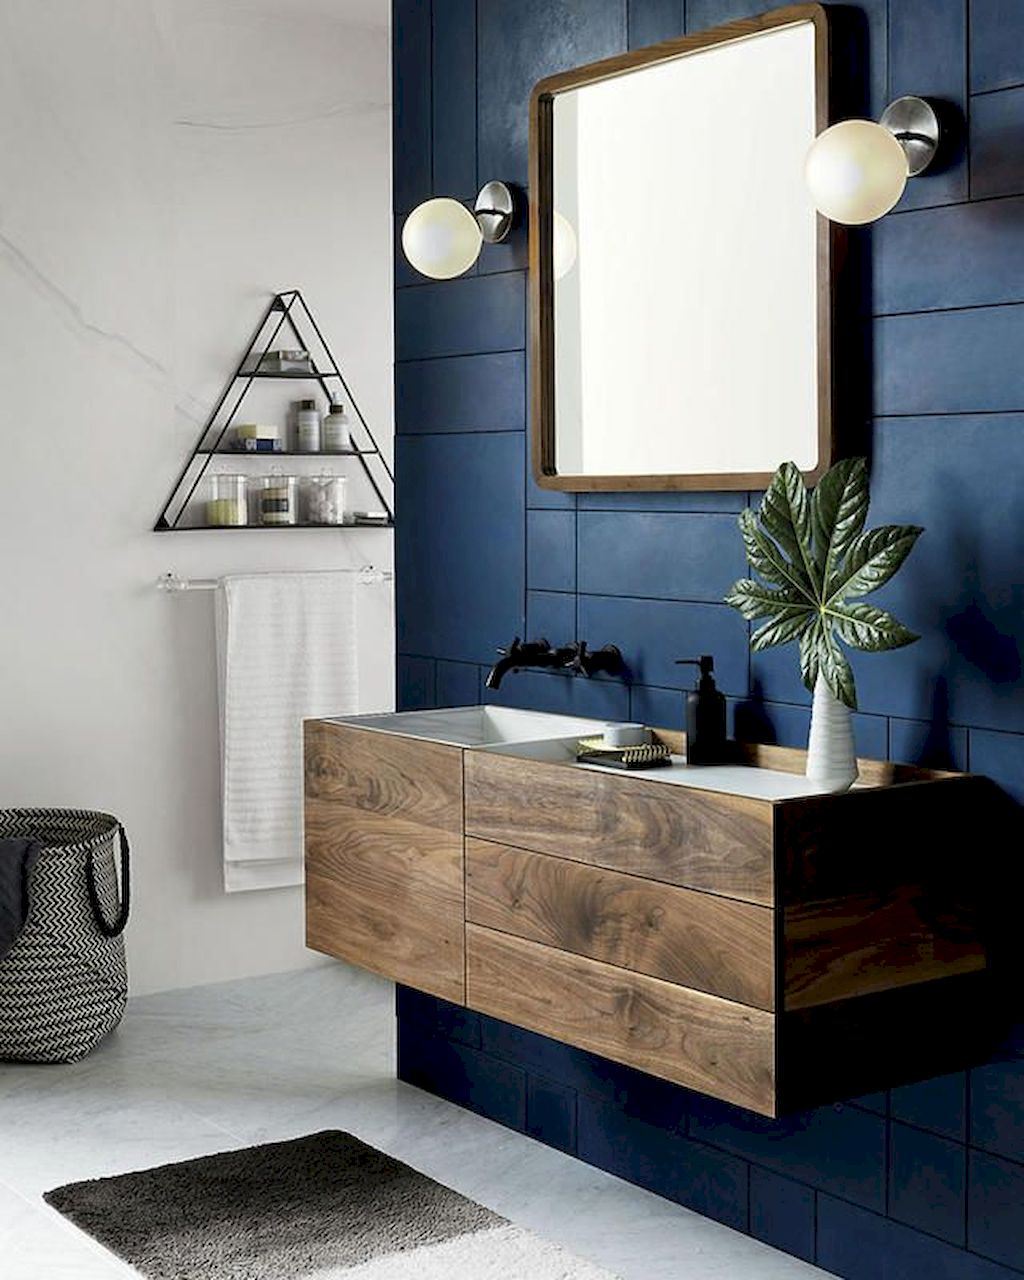 Exquisite Stylish Color Scheme For Your Bathroom